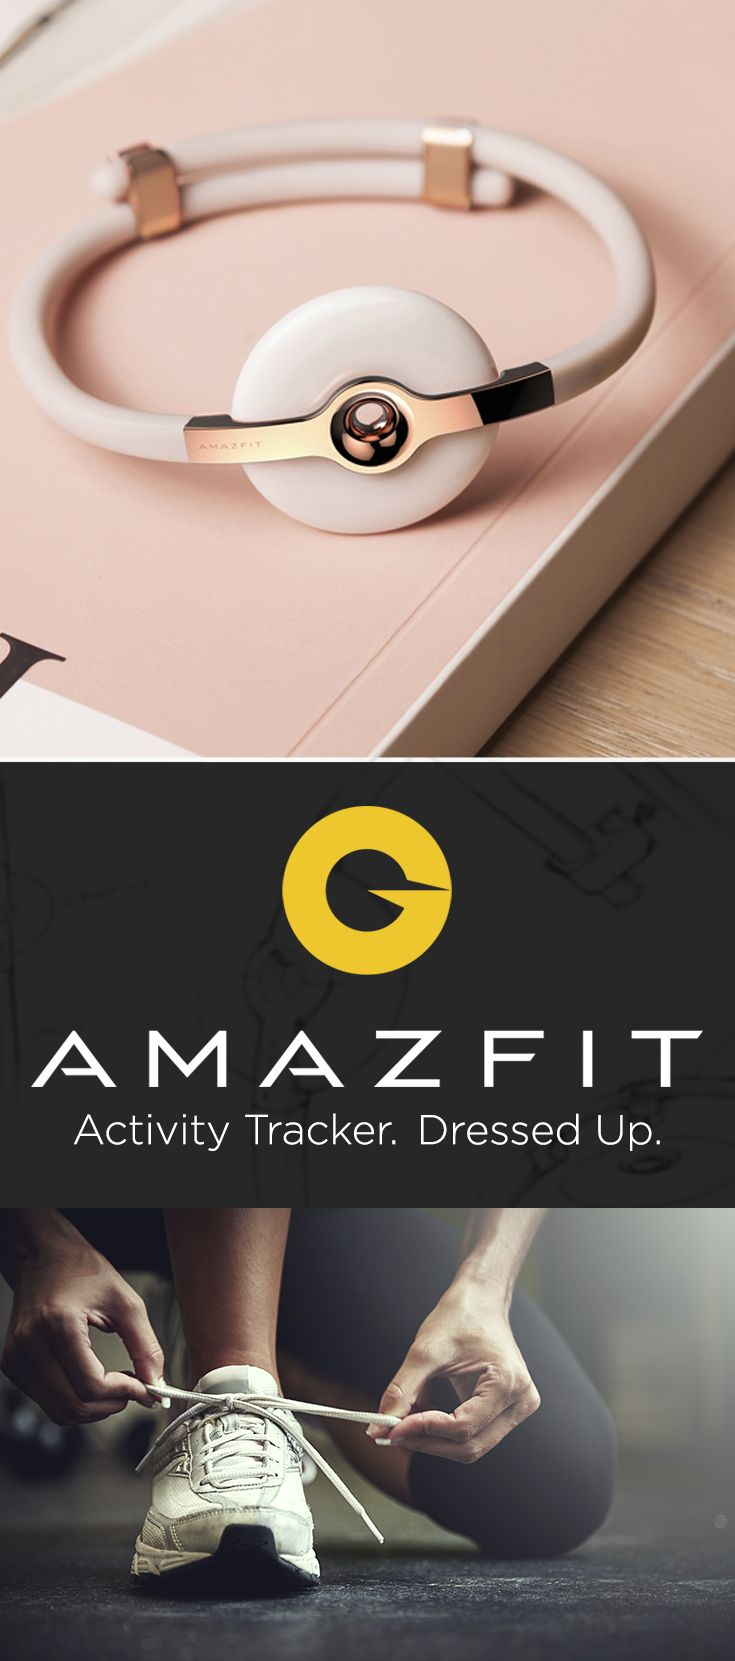 Activity tracker.  Dressed up.  Pair Amazfit with any outfit - from your Sunday best to your gym leggings.  Stylish and thin, Amazfit tracks your day seamlessly.